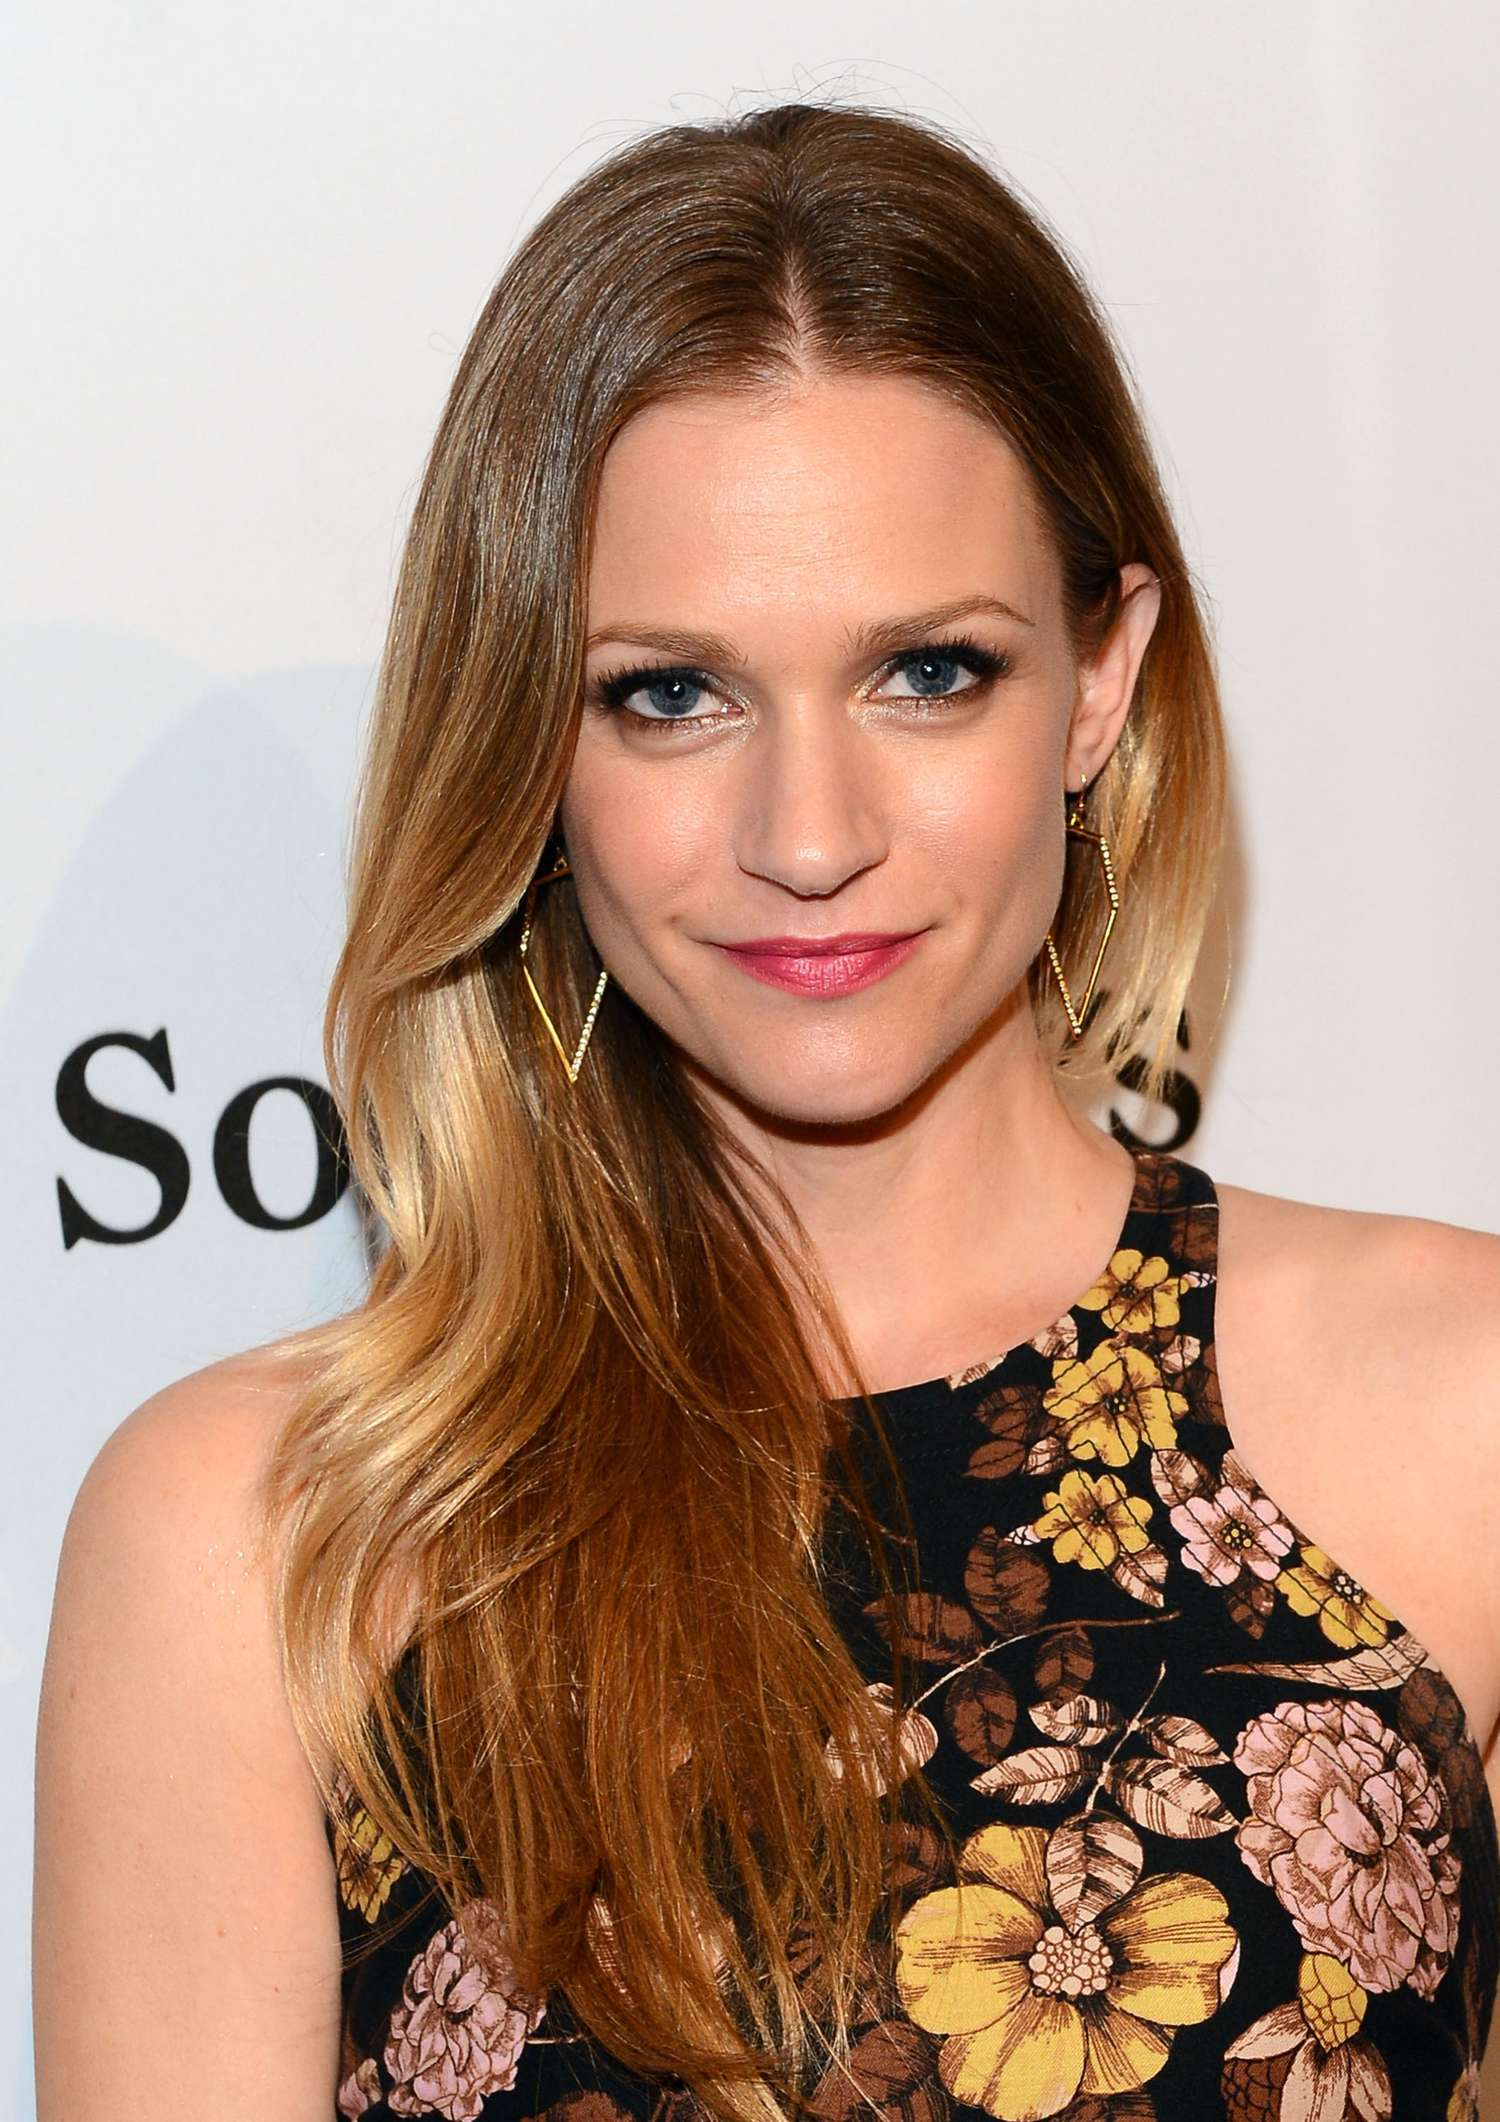 AJ Cook Pieces Of Heaven Charity Art Auction in Hollywood